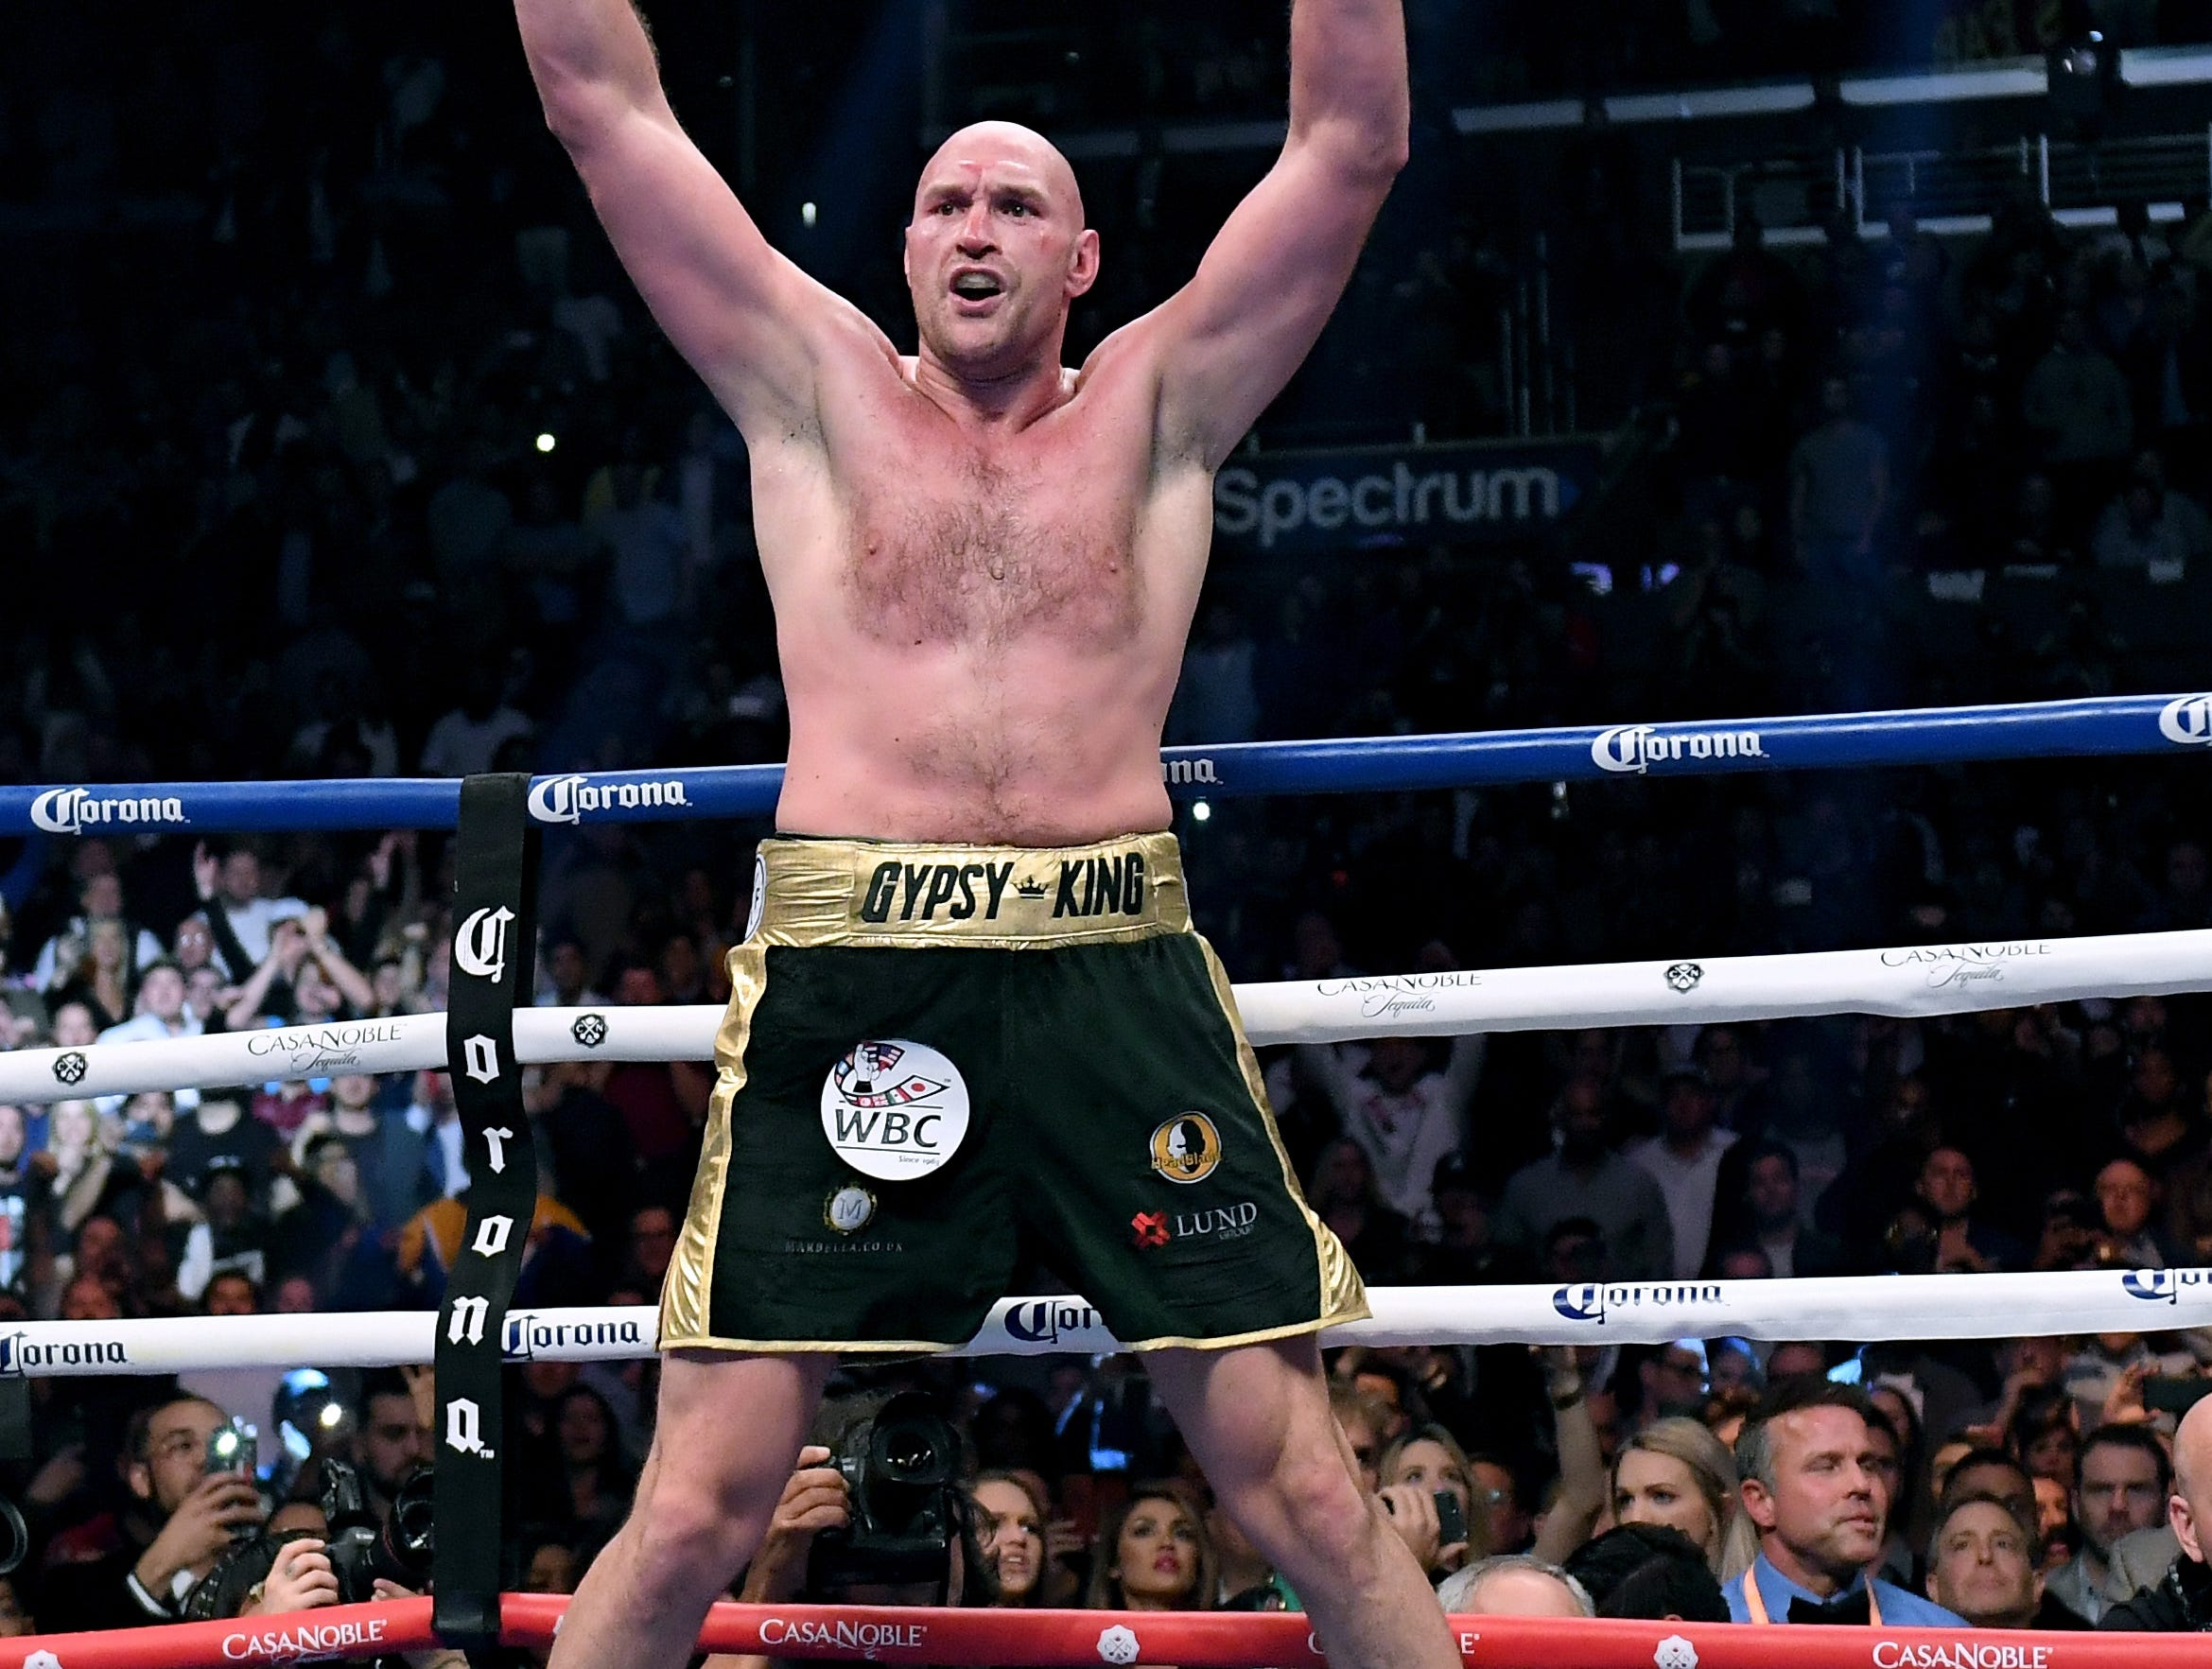 Tyson Fury celebrates at the end of the 12th-round of his WBC Heavyweight tile fight against Deontay Wilder on Dec. 1 at Staples Center.